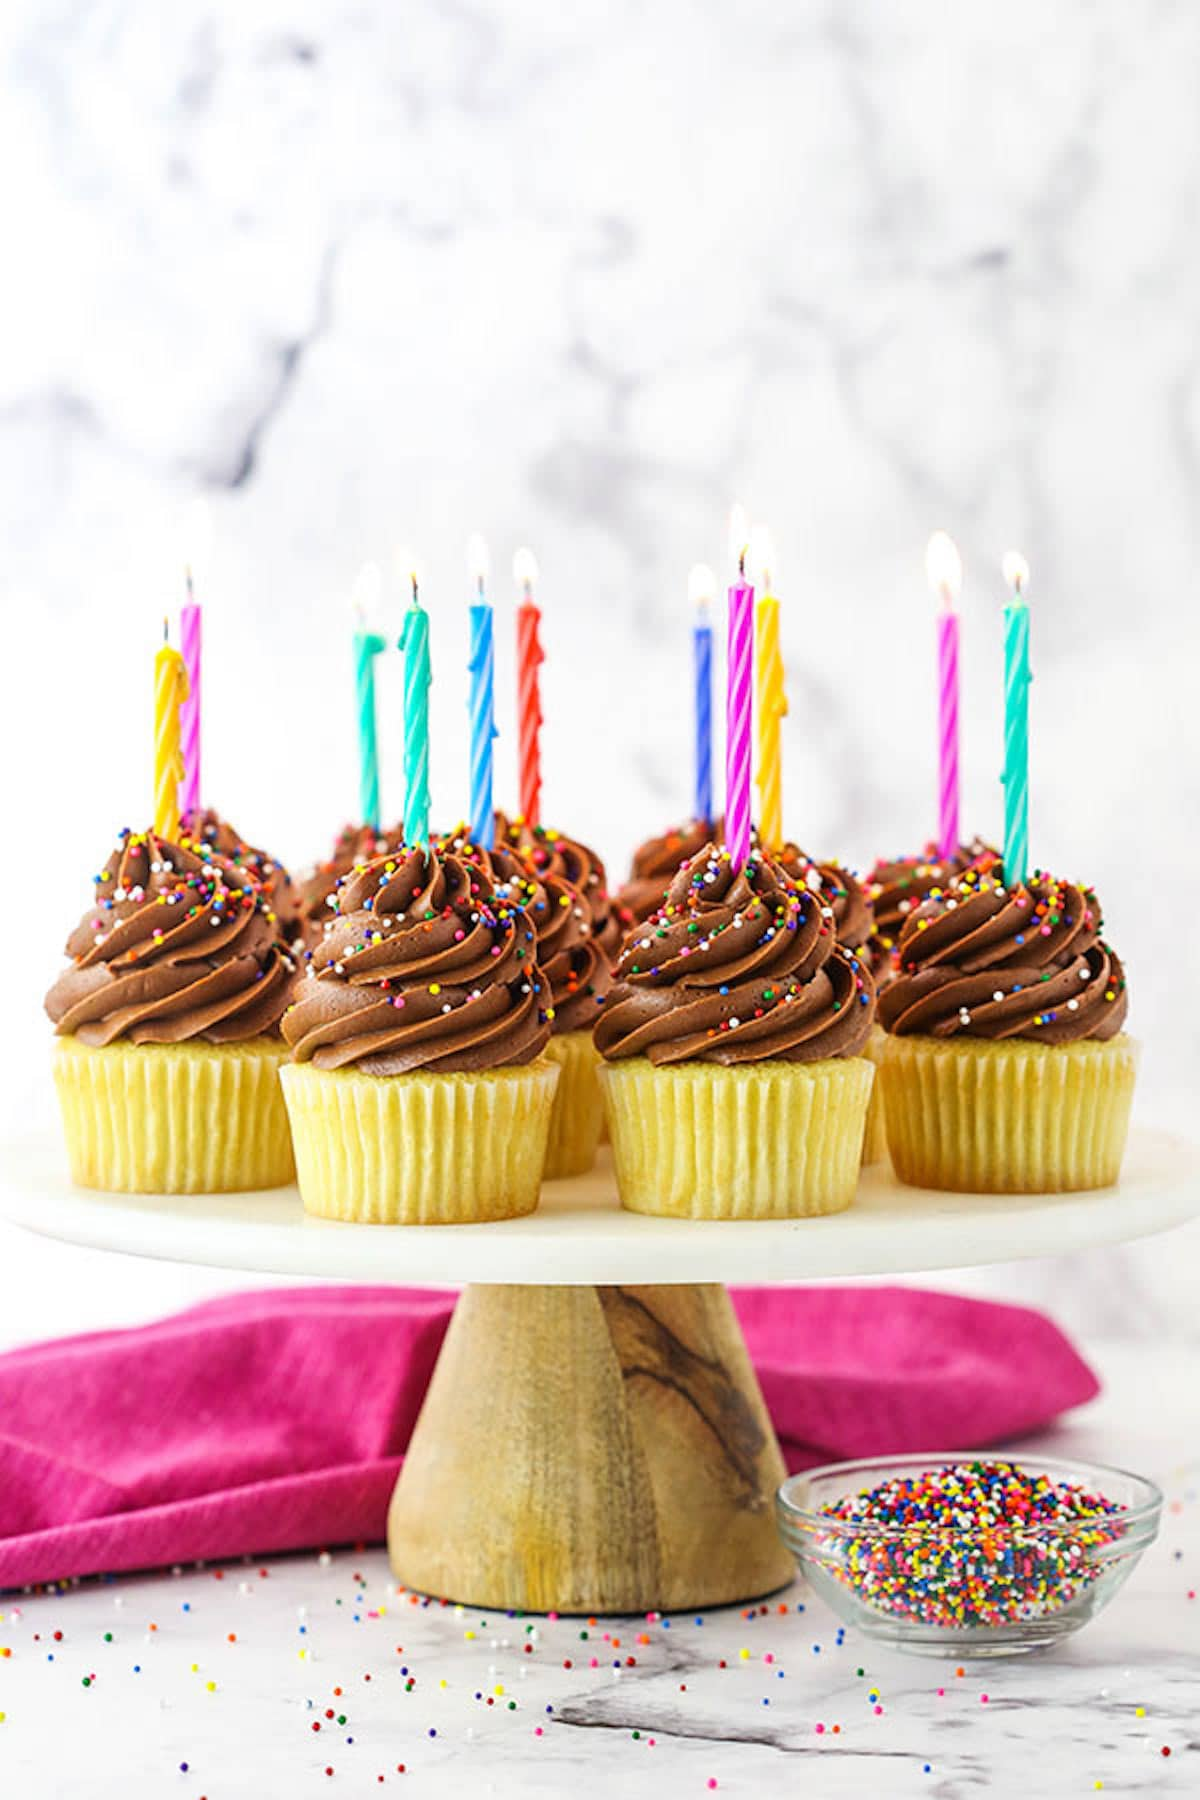 Chocolate Frosted Yellow Cupcakes with Colorful Candles On Them